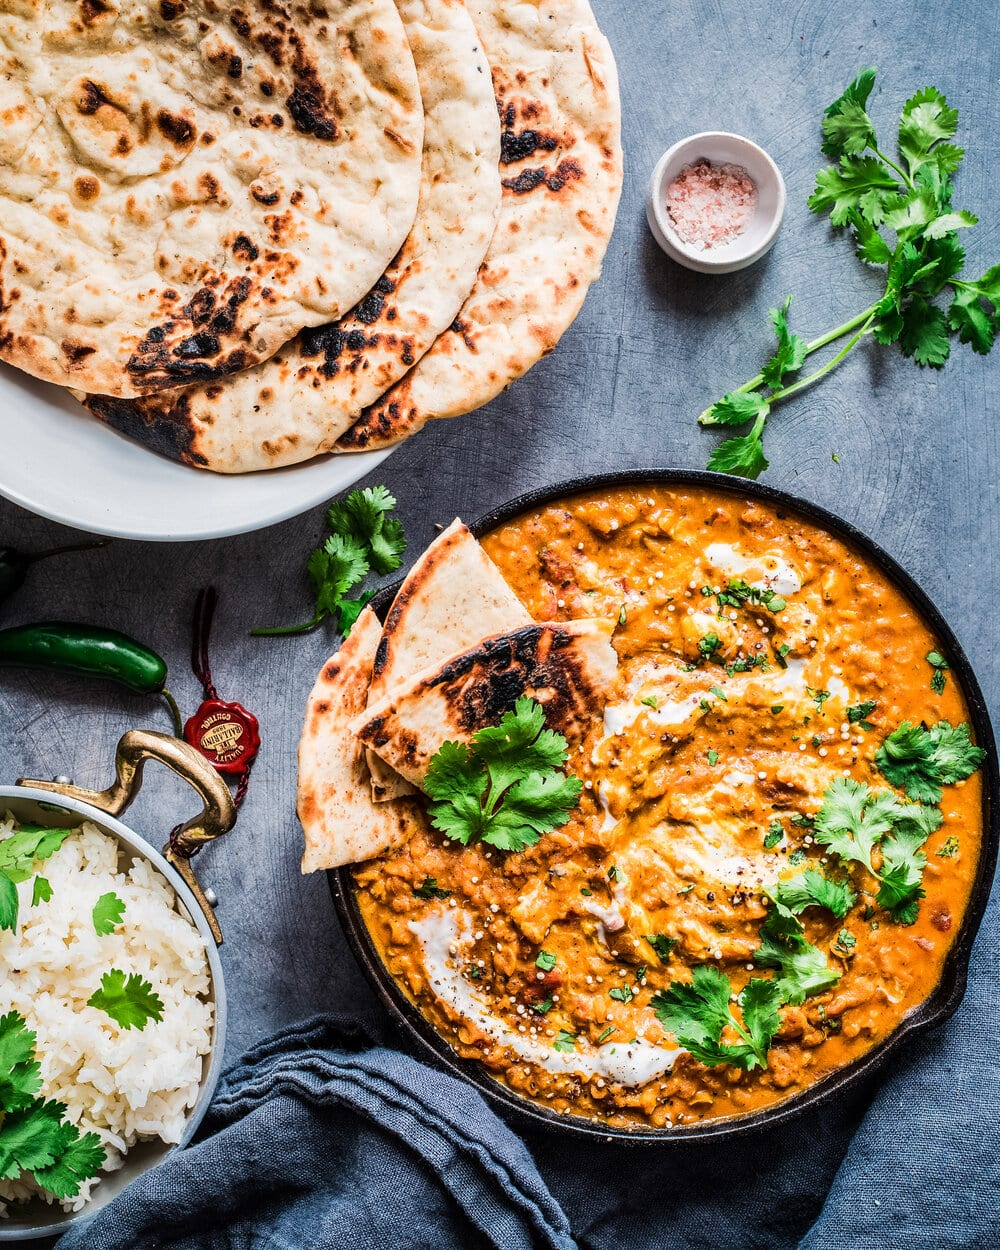 red lentil curry with naan bread, cilantro, and rice on blue table